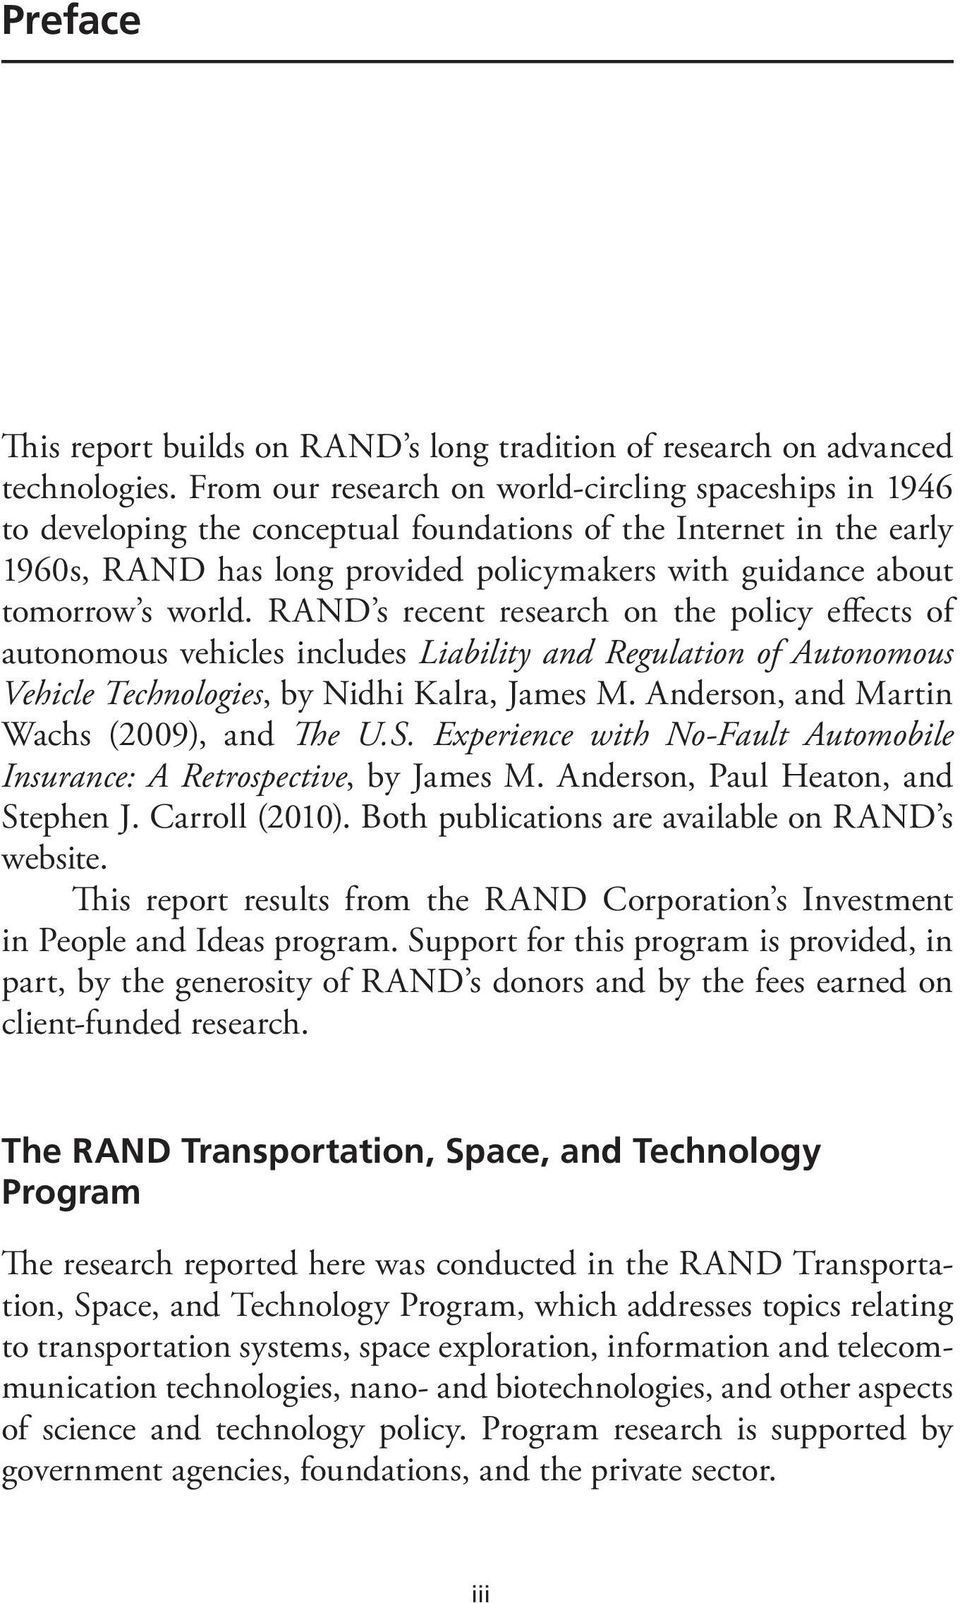 world. RAND s recent research on the policy effects of autonomous vehicles includes Liability and Regulation of Autonomous Vehicle Technologies, by Nidhi Kalra, James M.